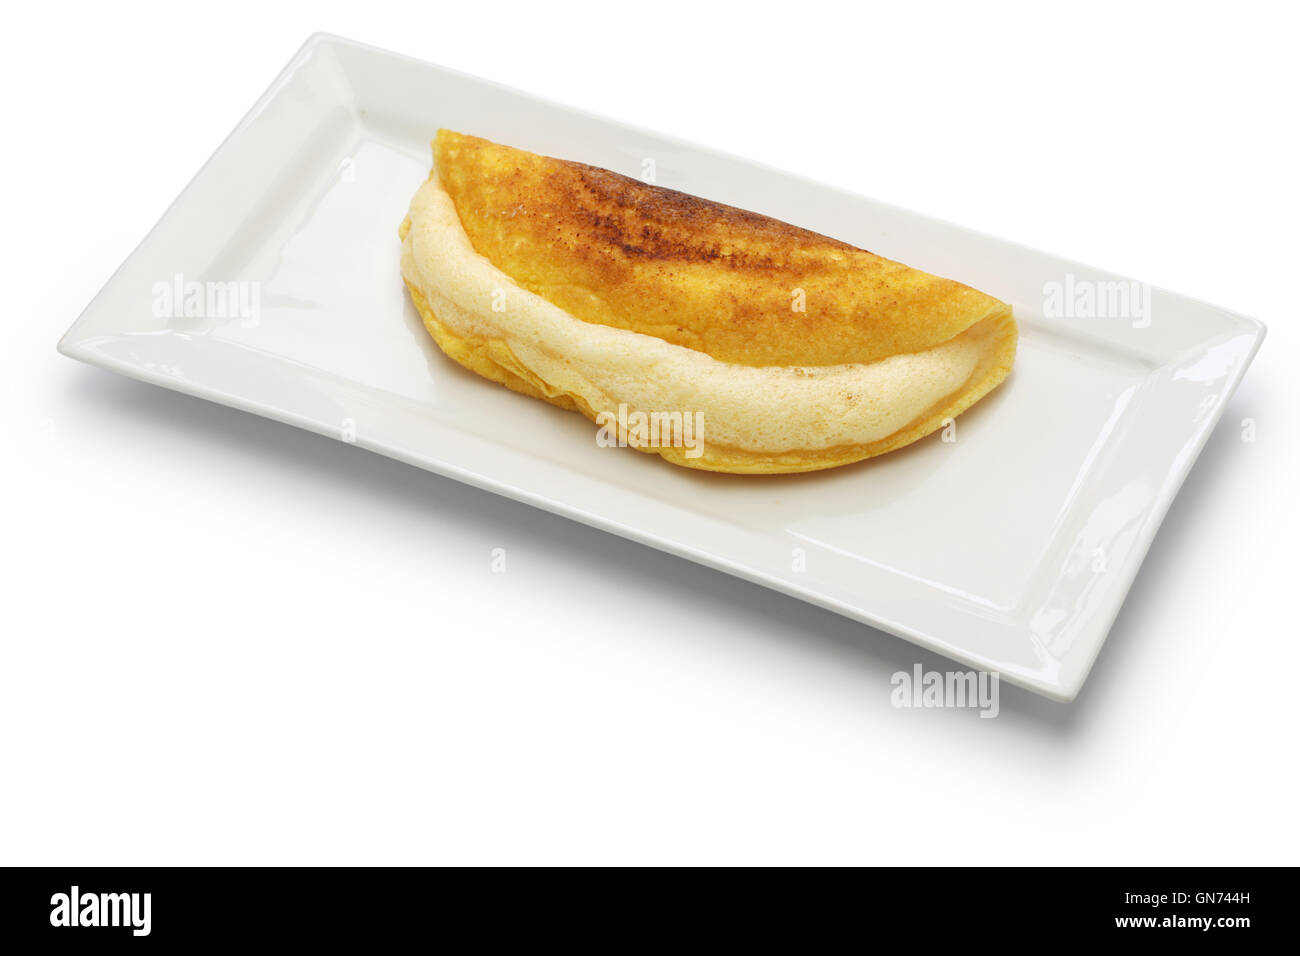 homemade mont saint michel style fluffy souffle omelet - Stock Image